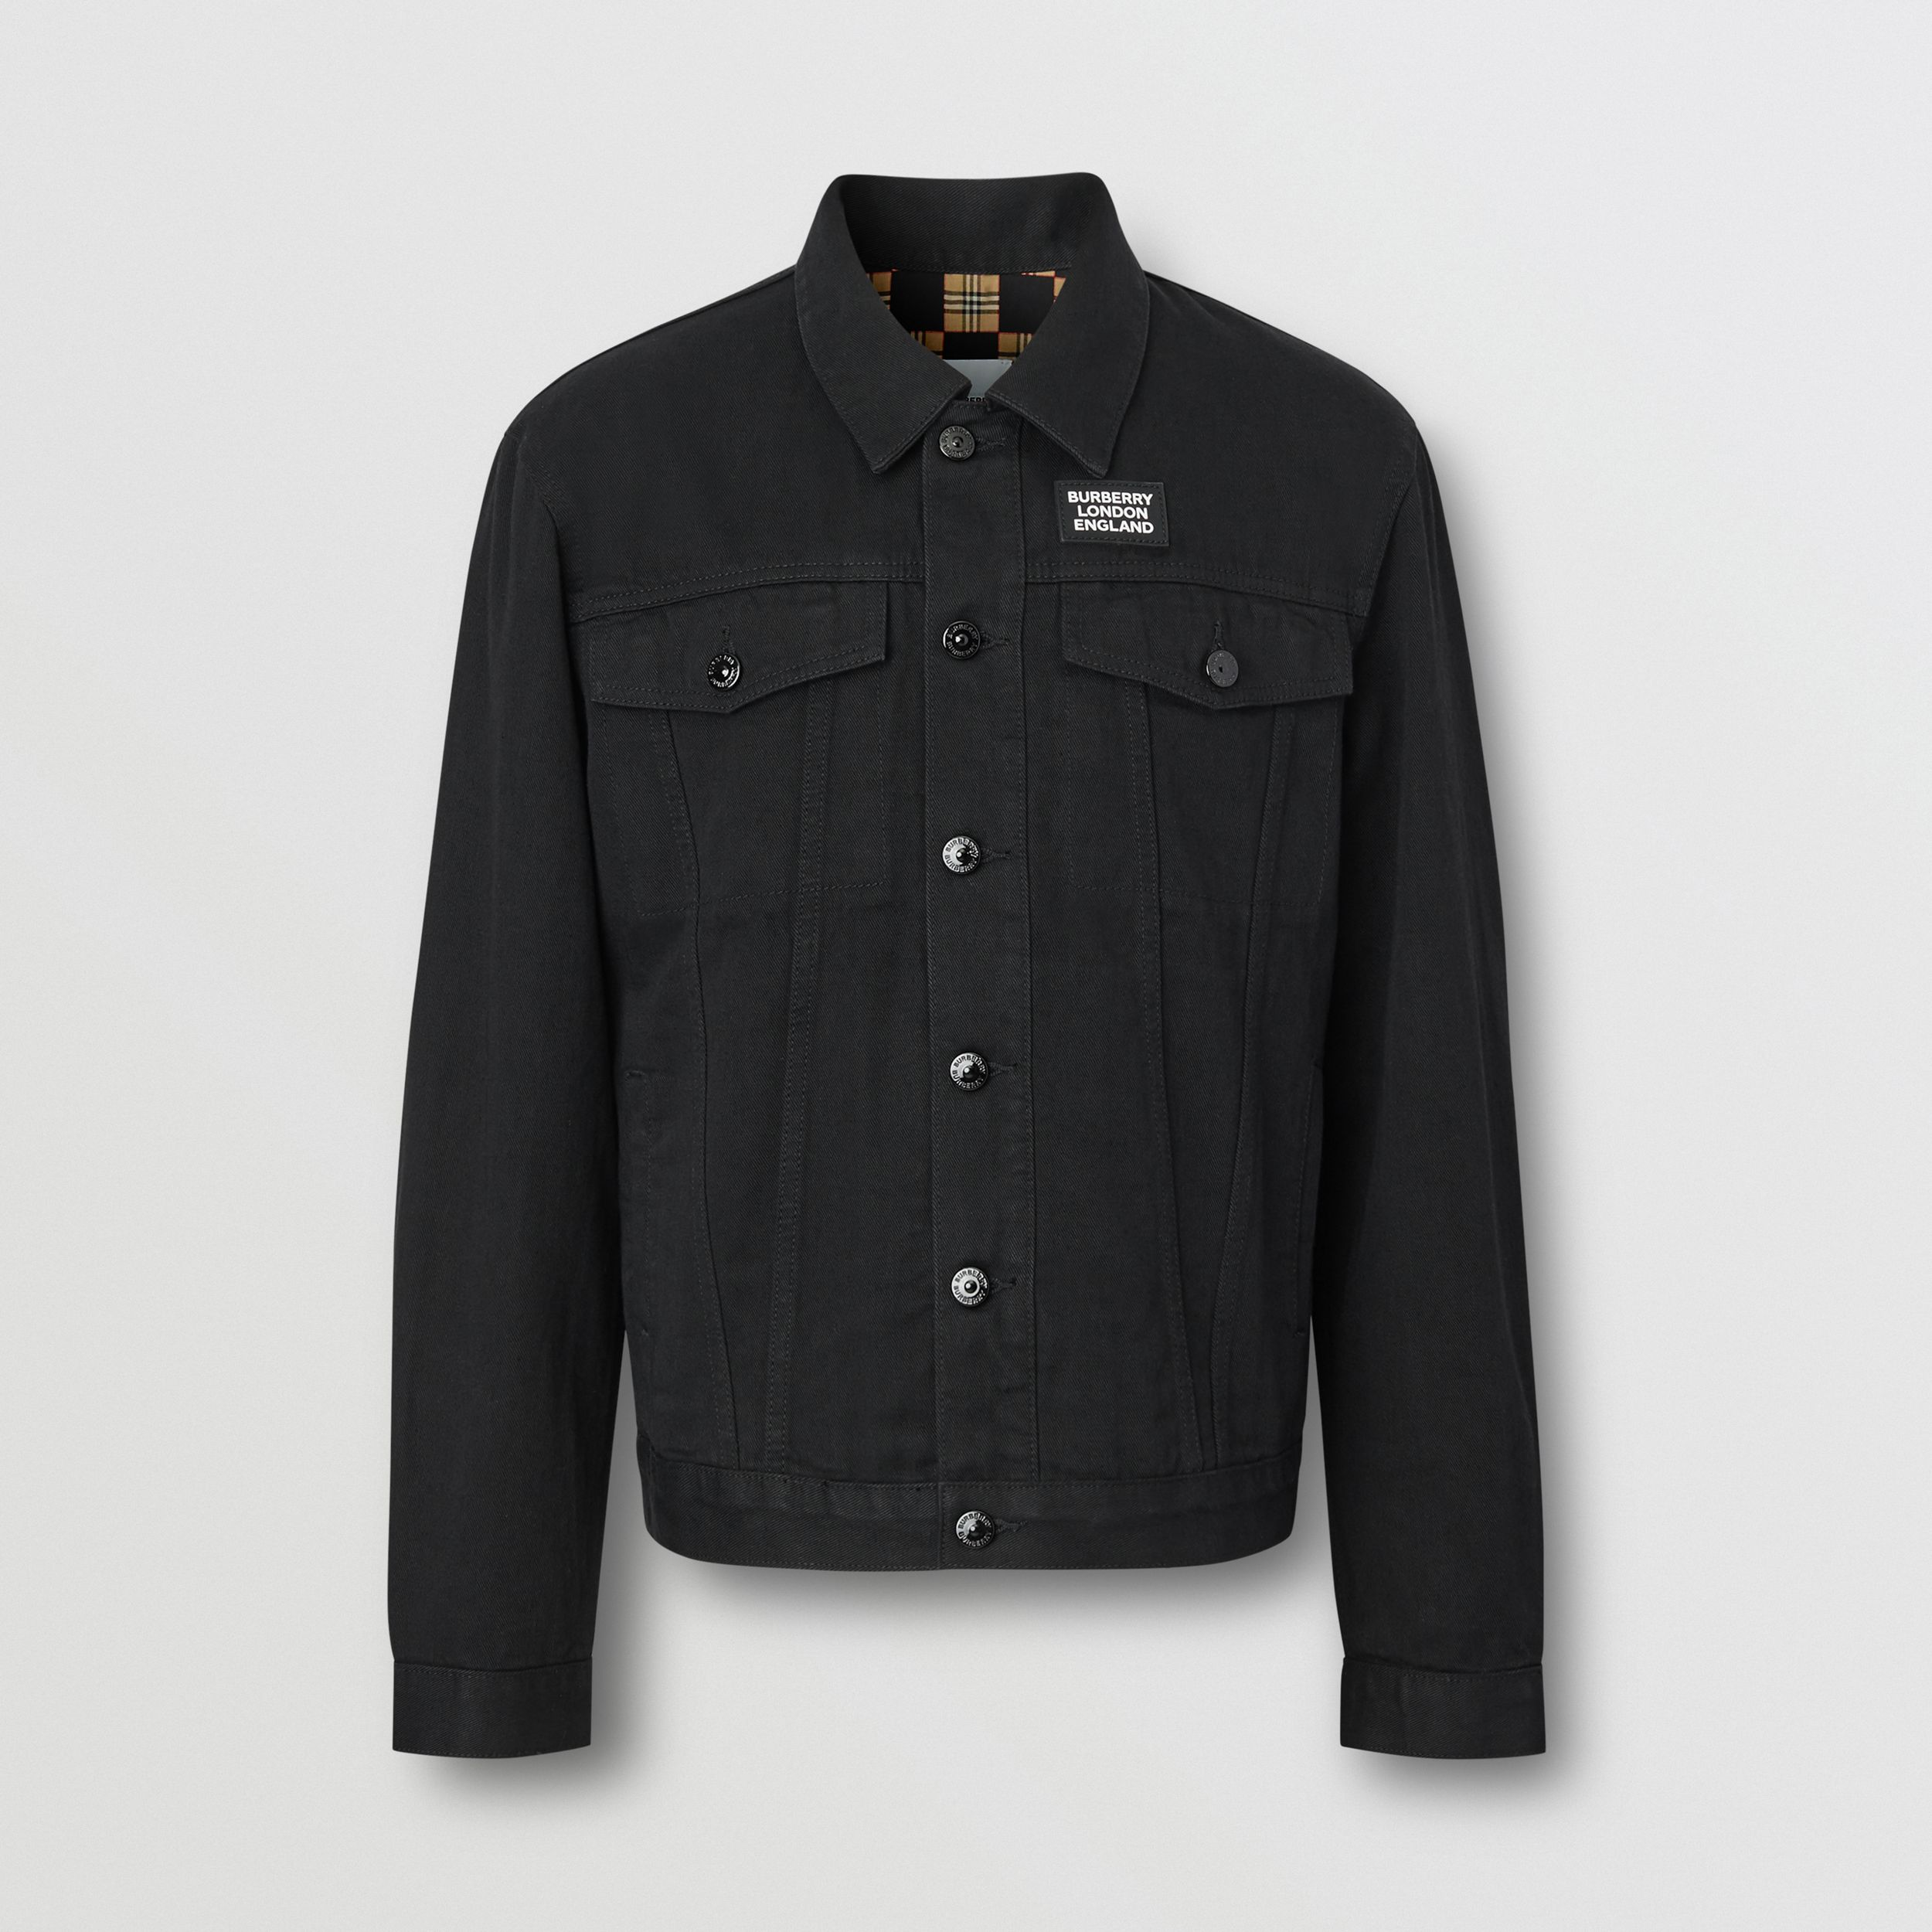 Logo Appliqué Japanese Denim Jacket in Black - Men | Burberry - 4